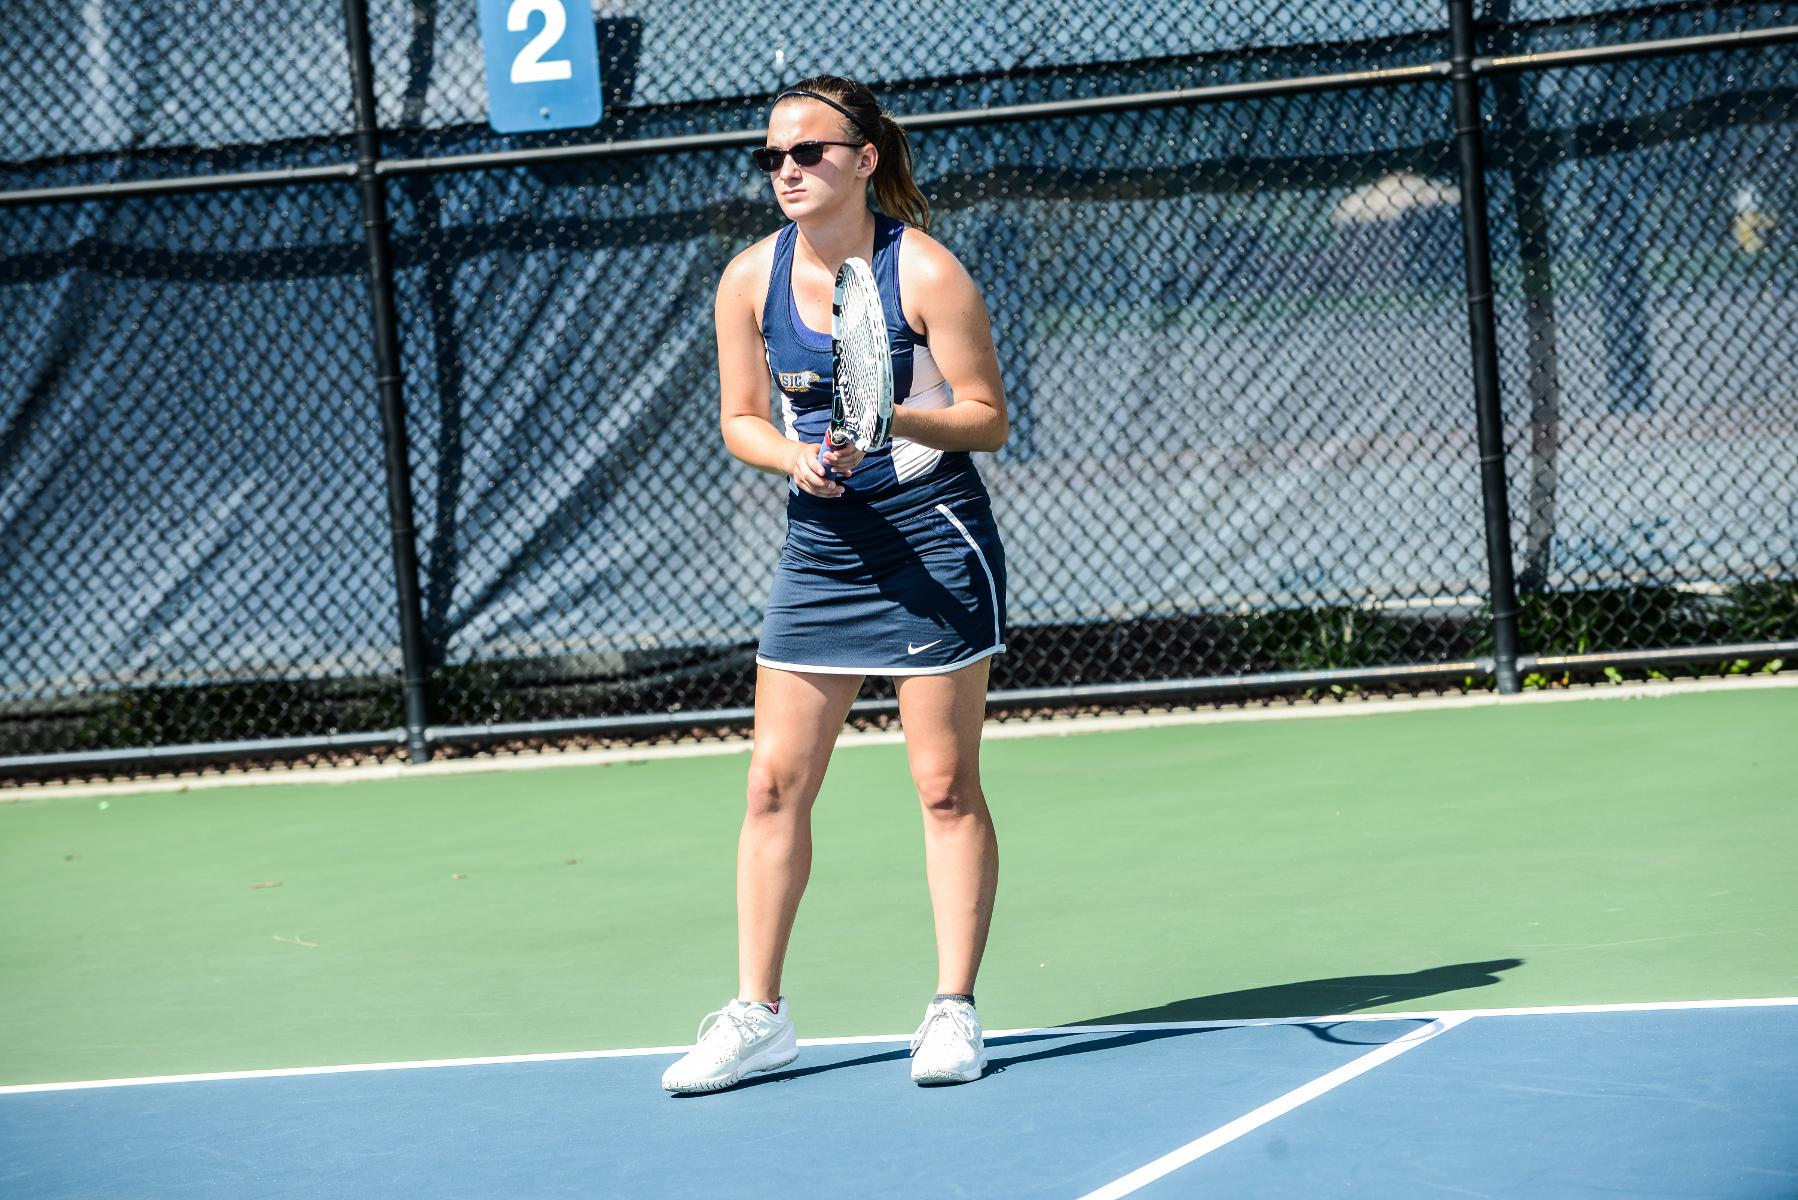 Women's Tennis Opens its 2017 Campaign on Saturday